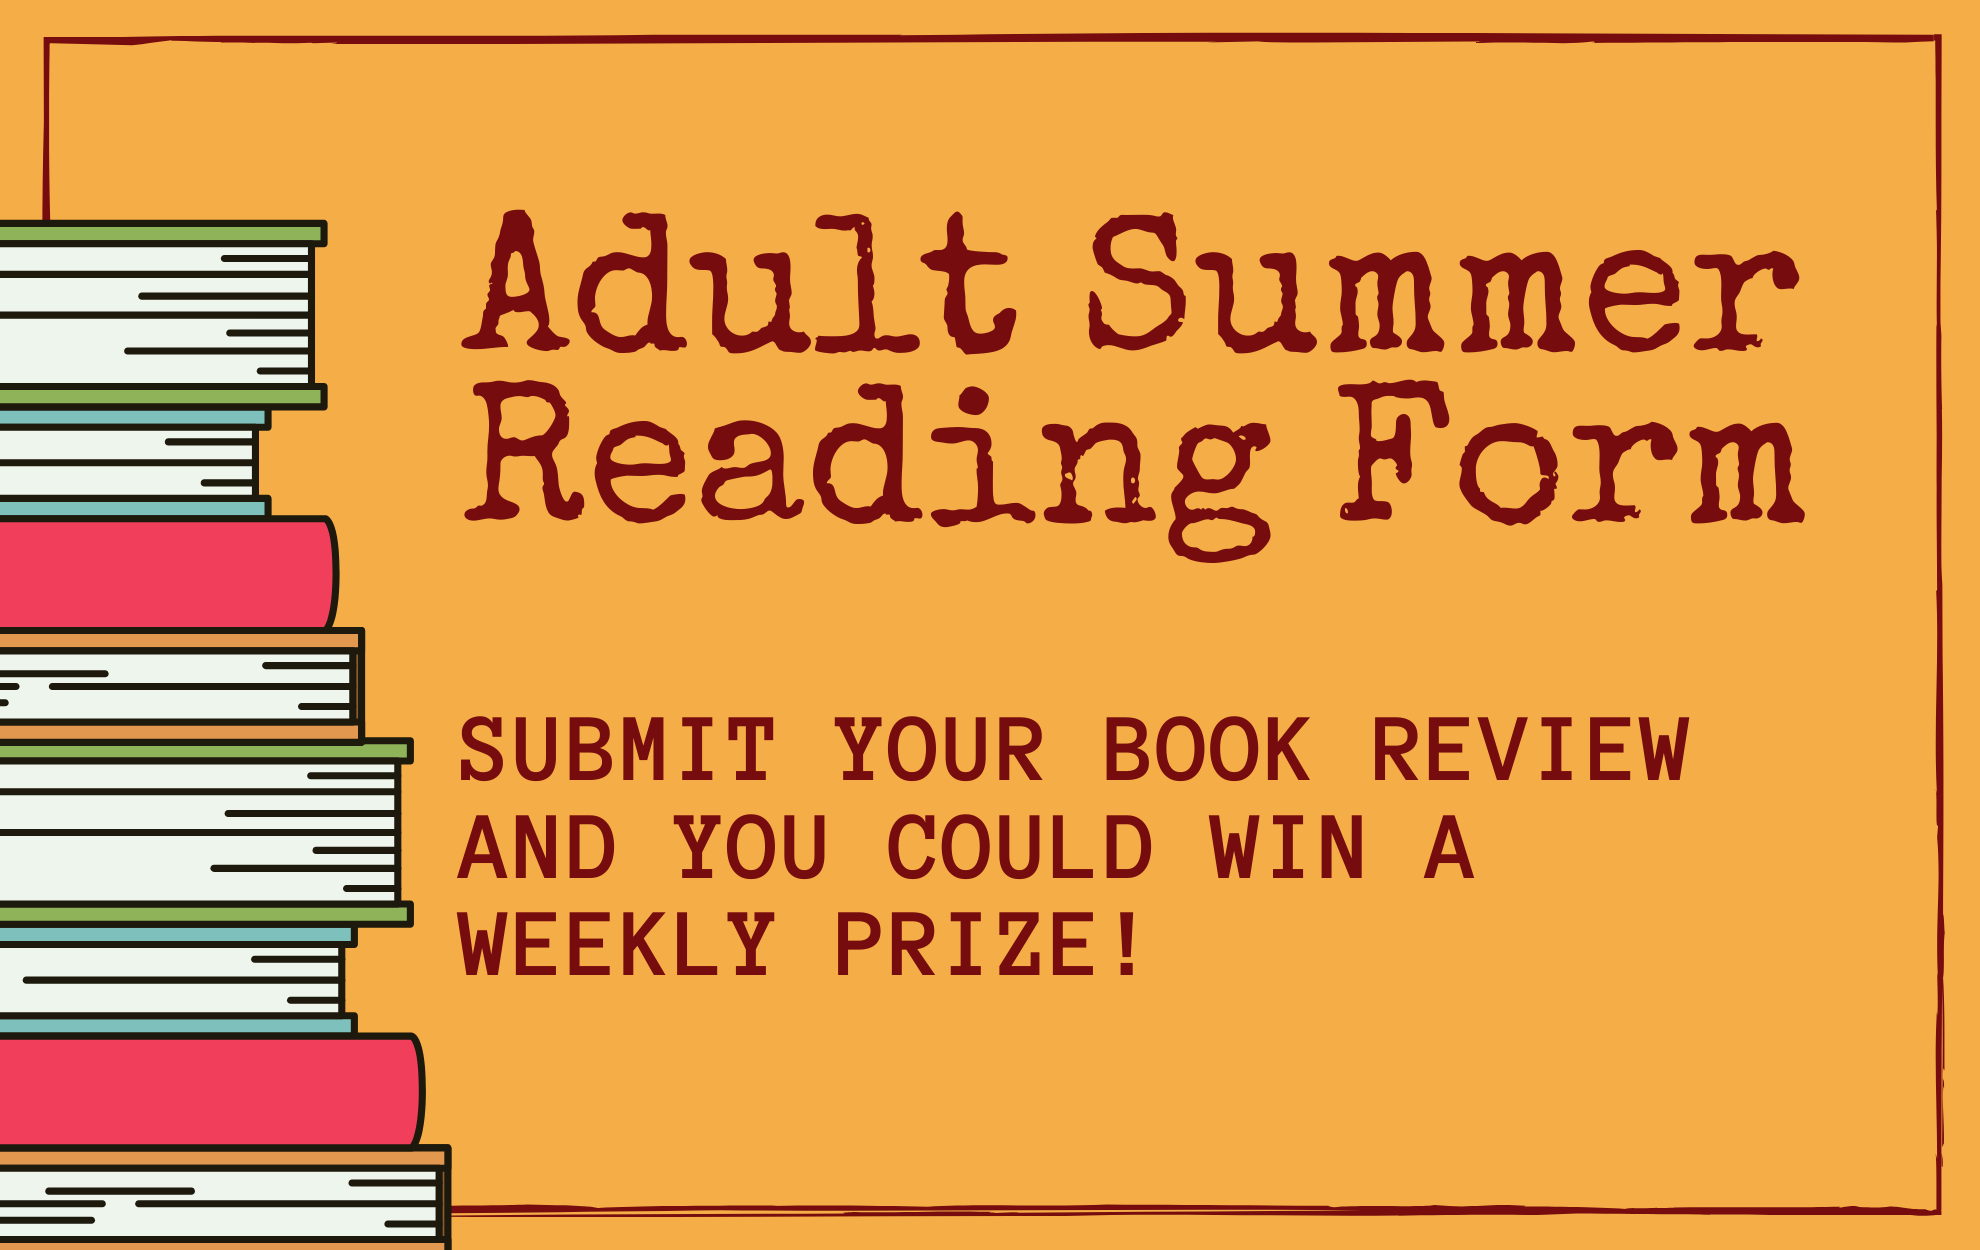 Click to submit your Adult Summer reading book review